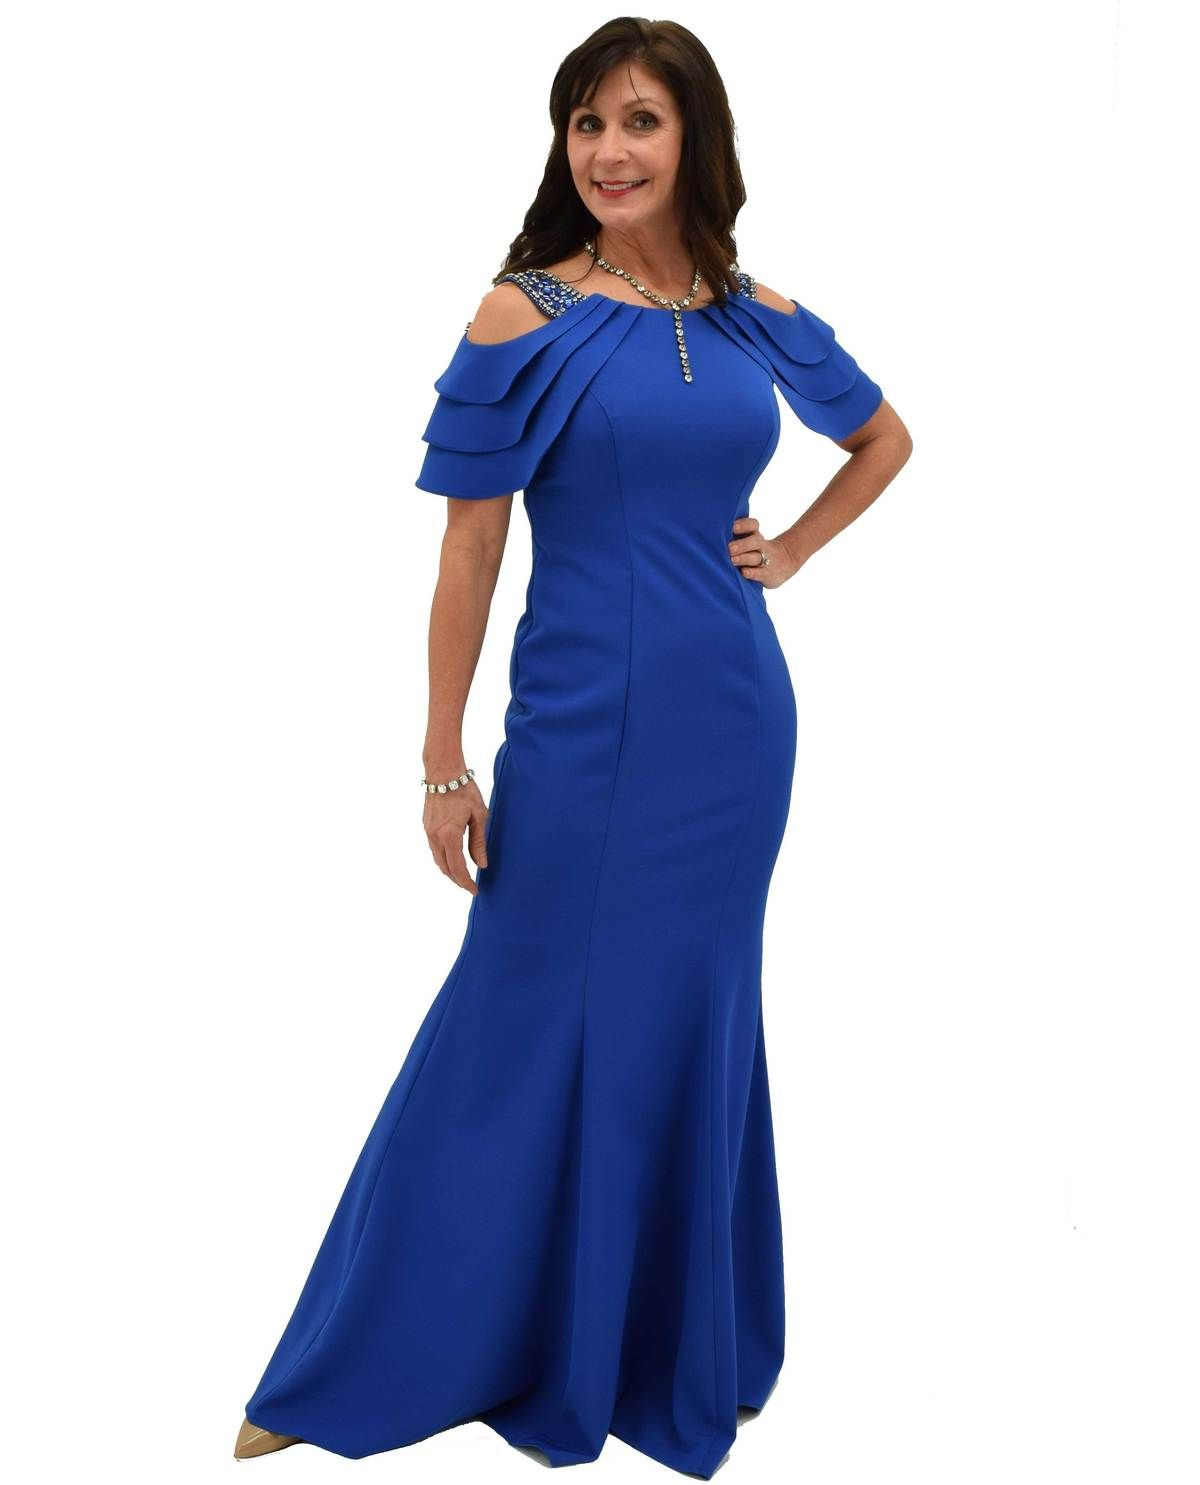 fb5dae91842b7 This dazzling sapphire blue gown has rhinestones along the shoulders for  your son or daughter's special day! #motherofthebridedresses  #motherofthebride ...